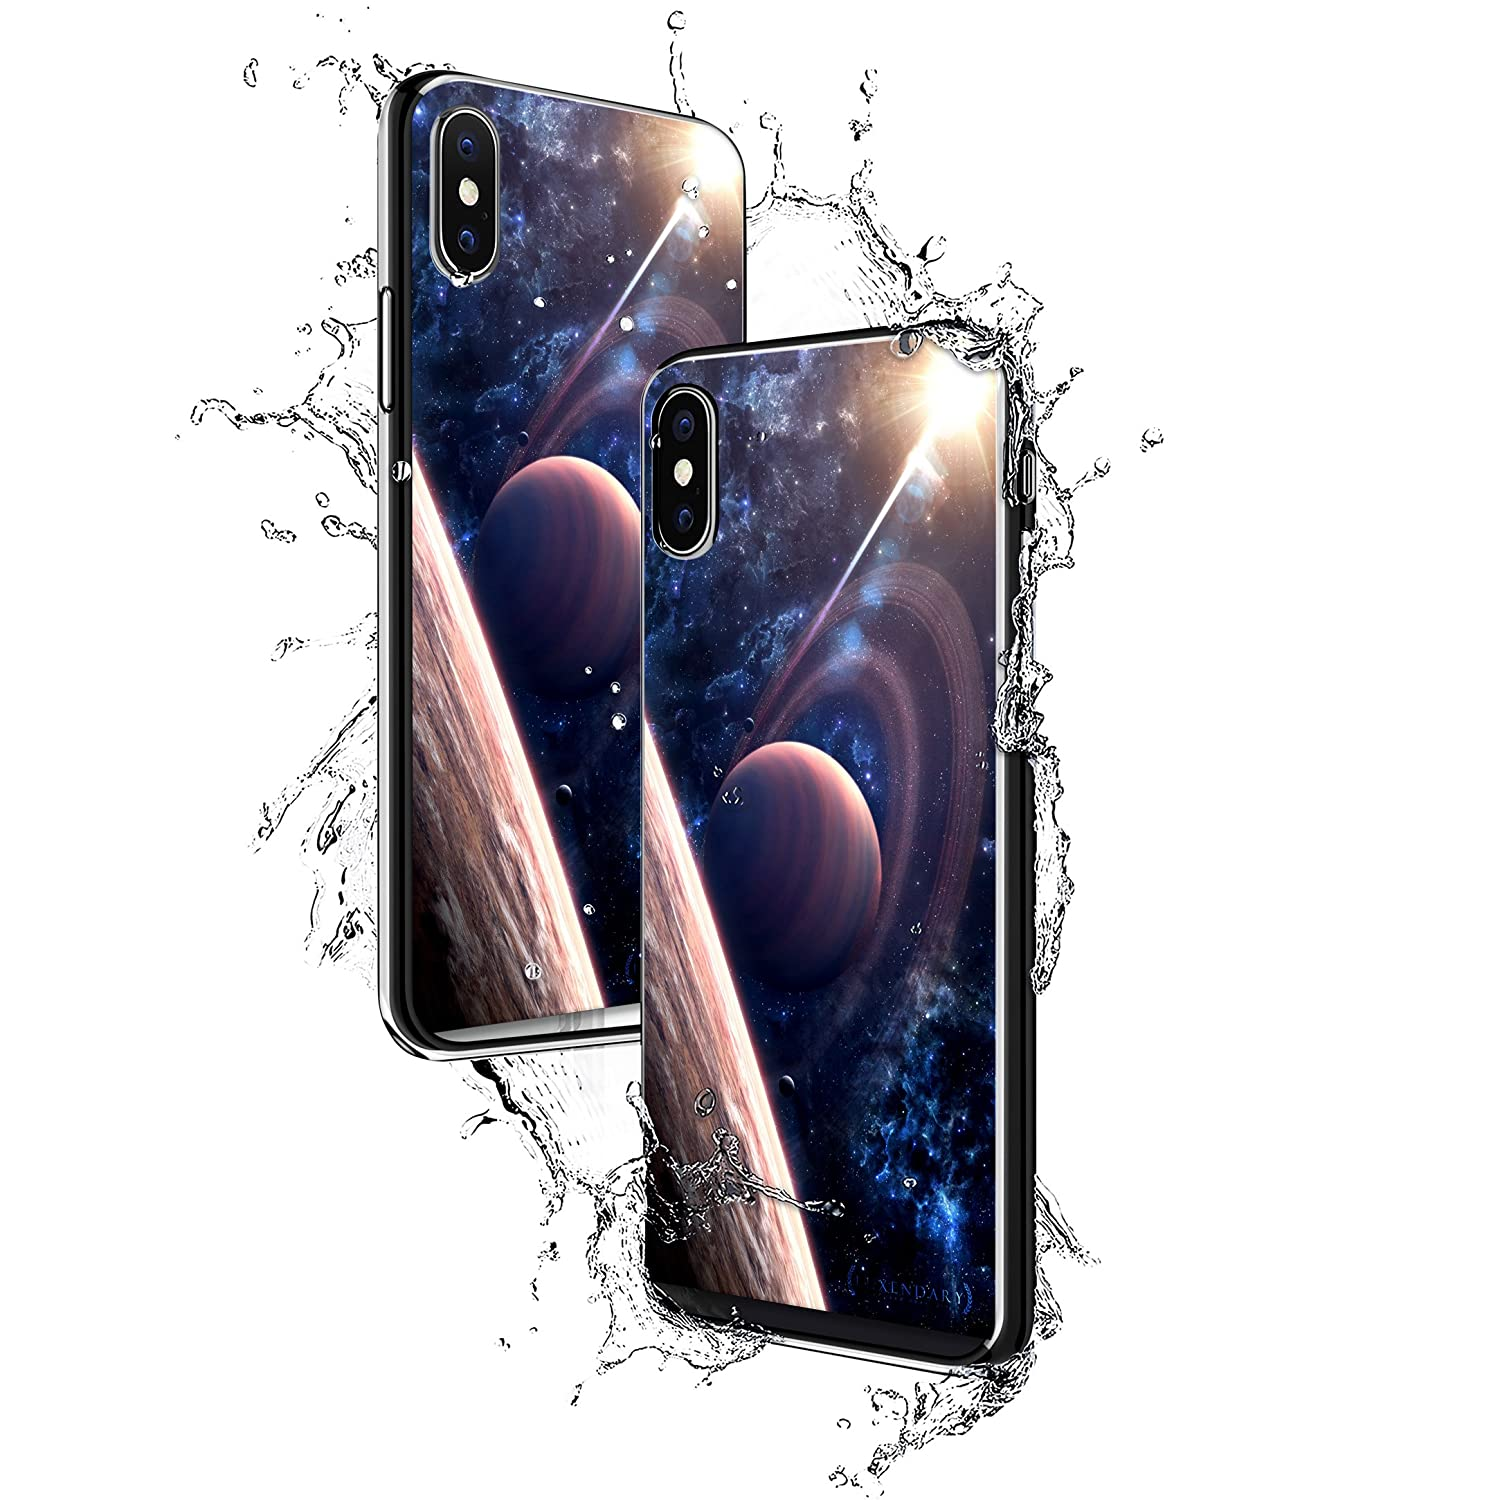 MOONS OF SATURN | Luxendary Chrome Series designer case for iPhone X in Titanium Black trim